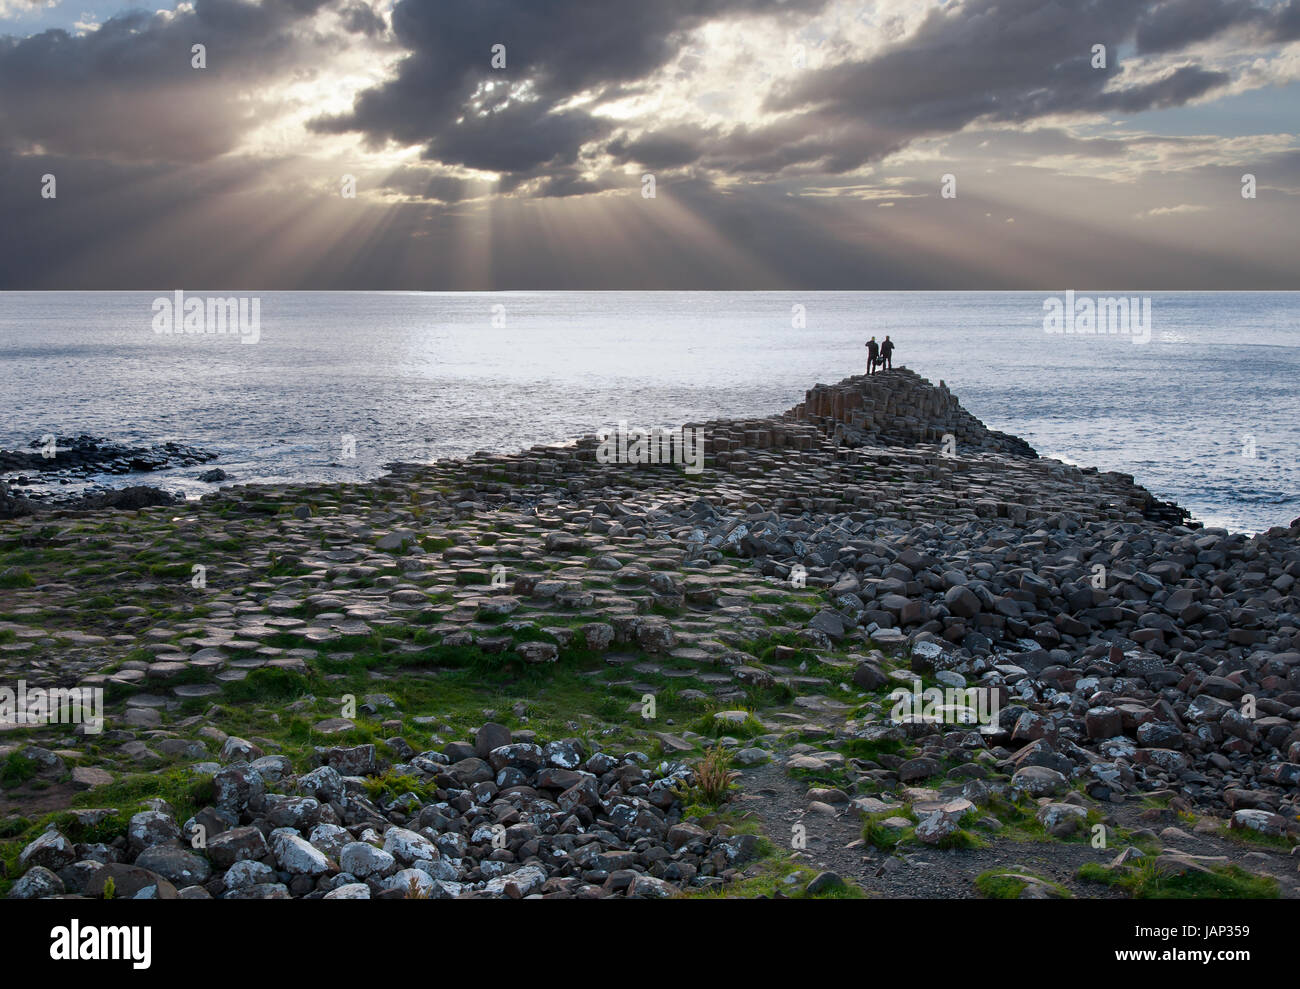 Giants Causeway,unique geological formations of basalt volcanic rocks on the Atlantic coast in Northern Ireland, - Stock Image